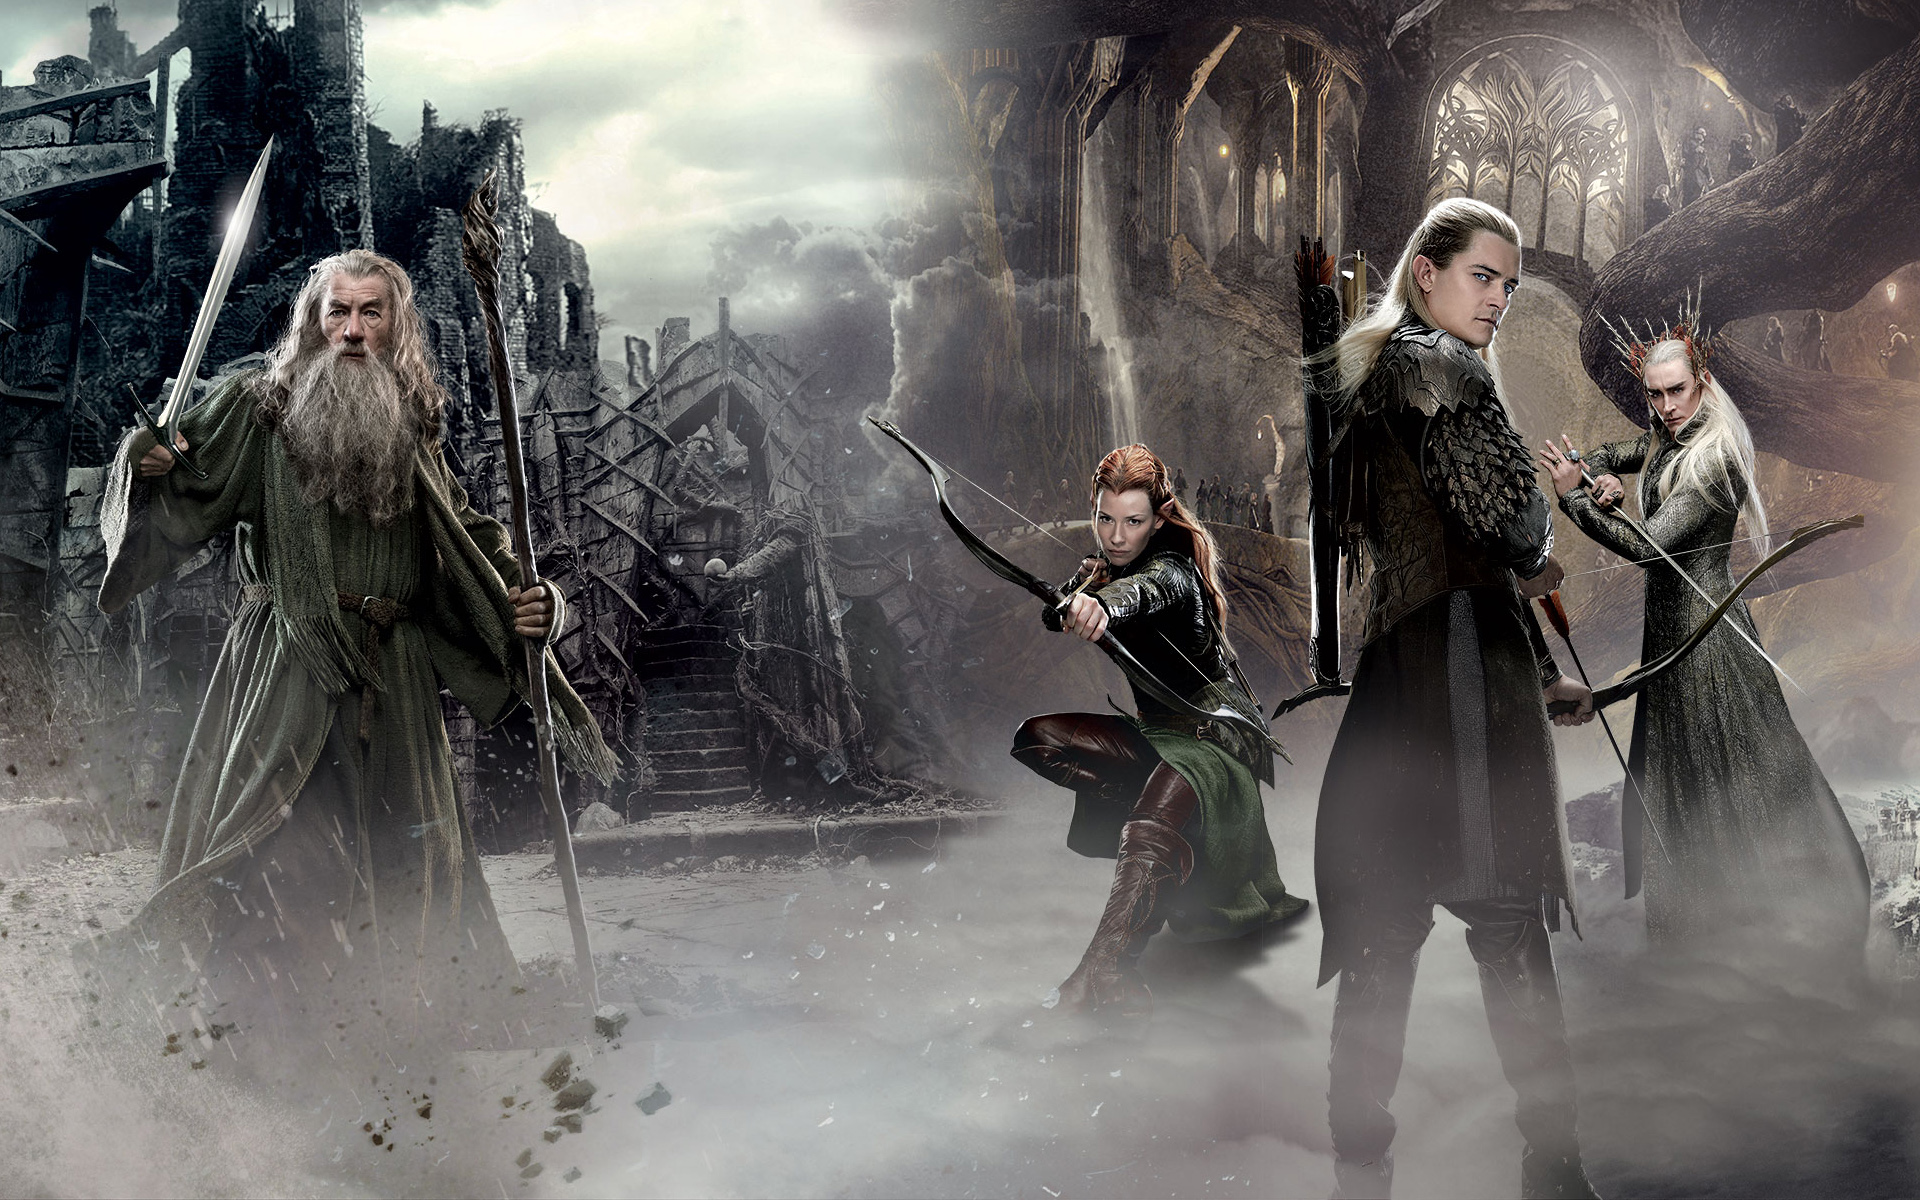 Movie The Hobbit The Desolation Of Smaug Gandalf The Hobbit Wallpaper 1920x1200